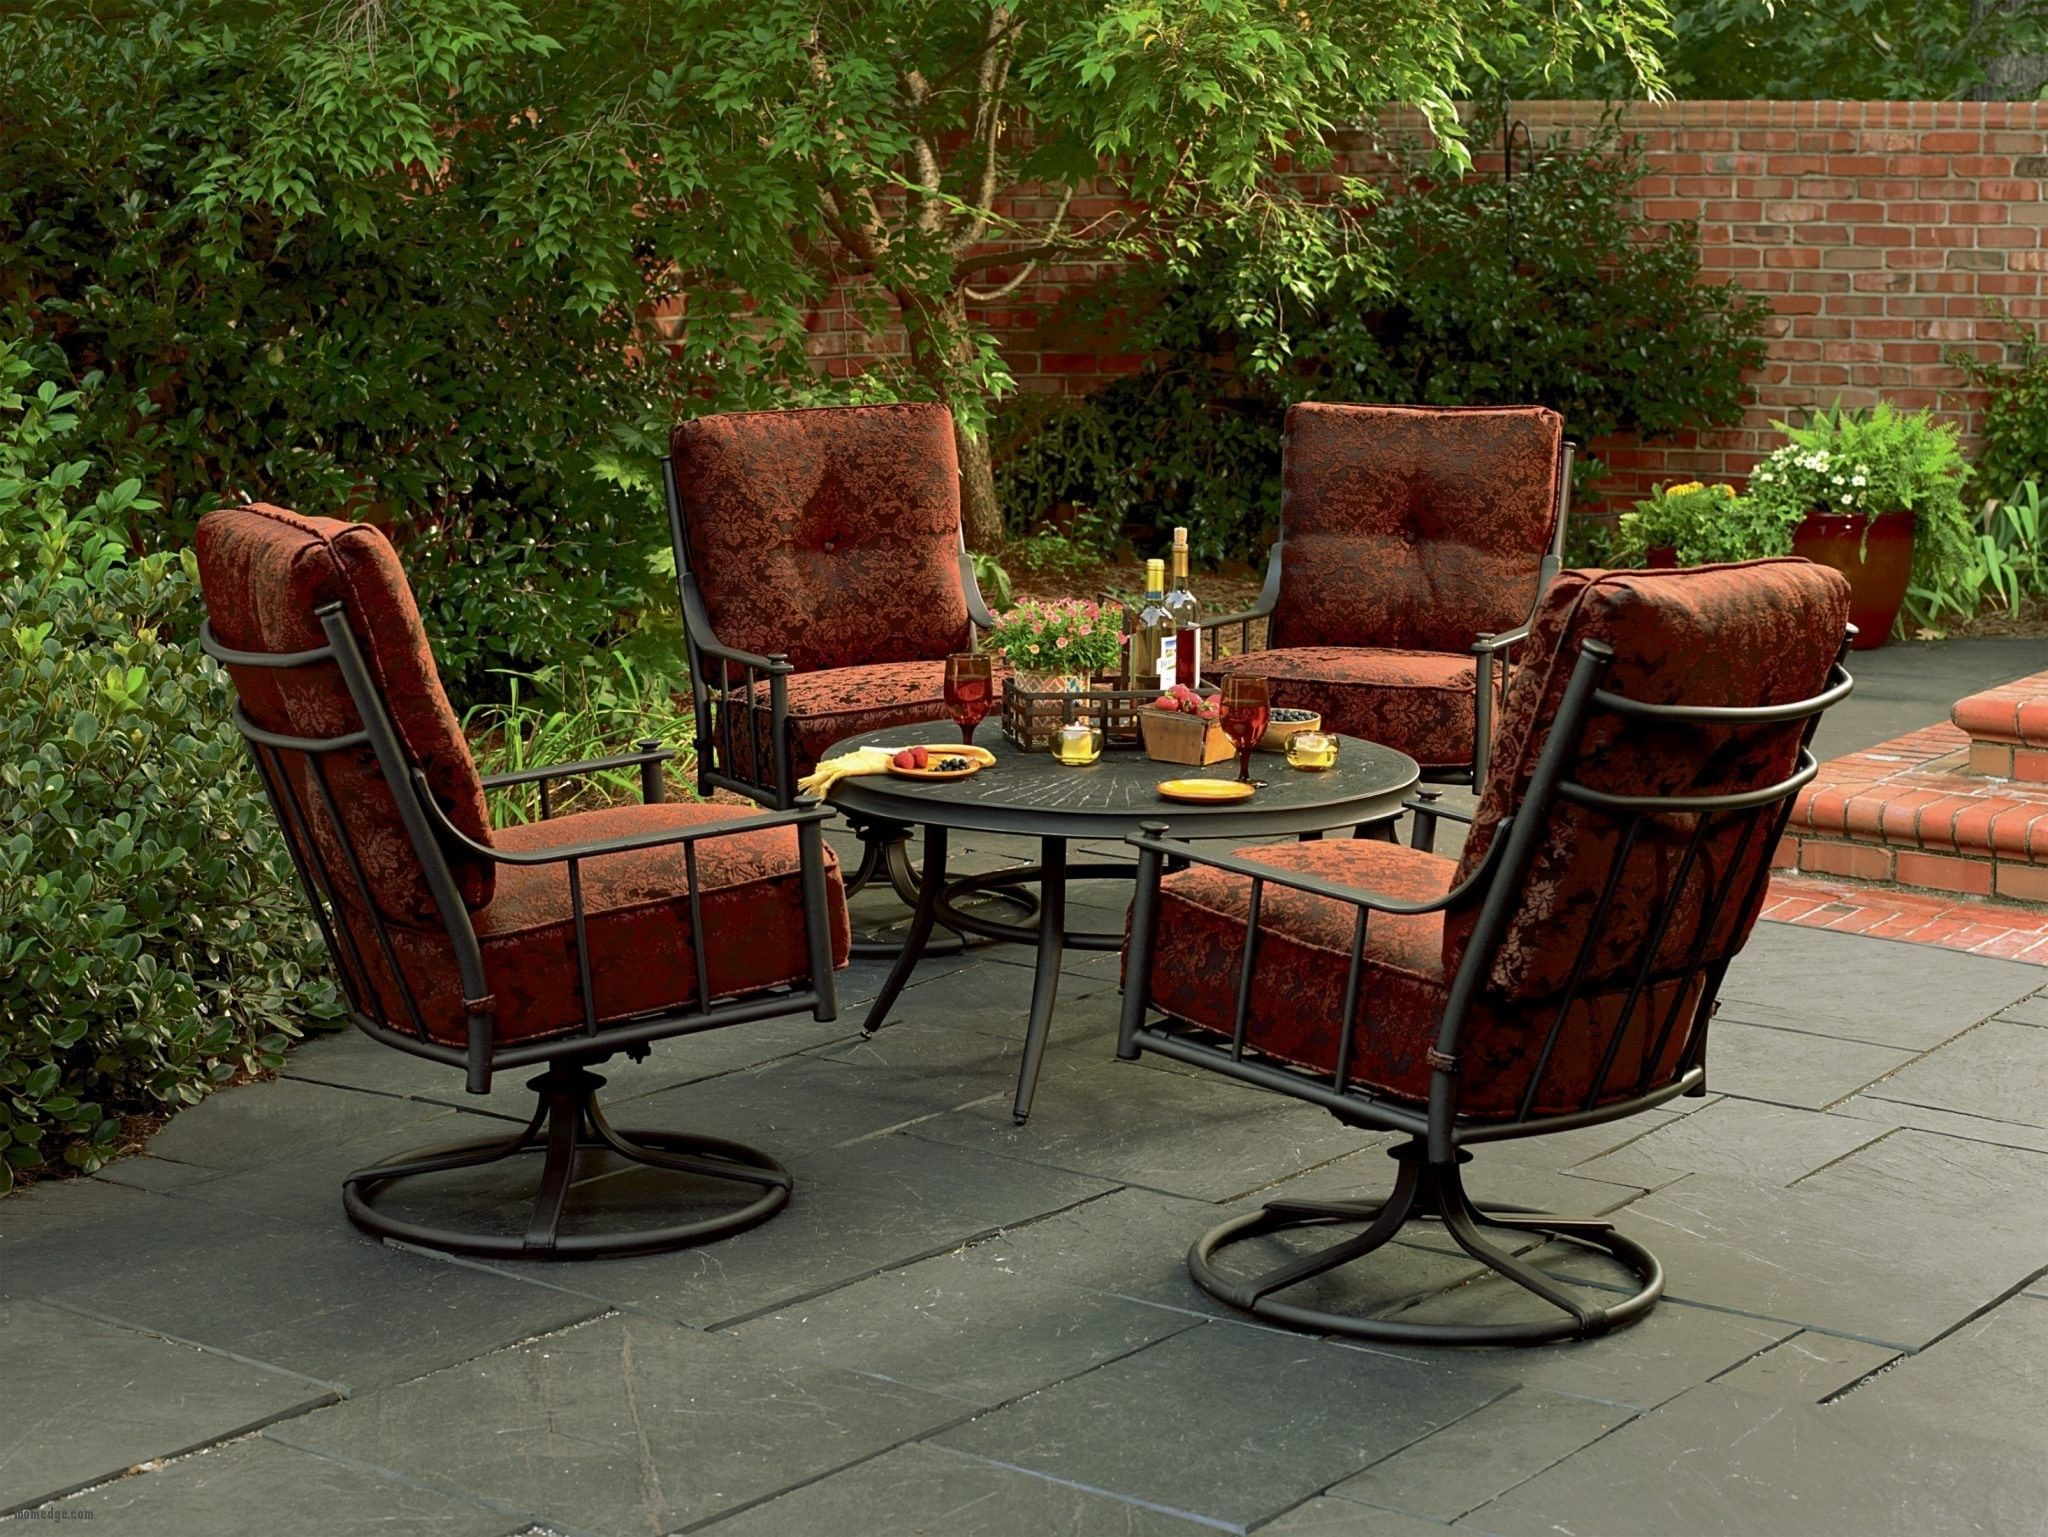 Inspirational Lovely Clearance Outdoor Furniture , Kmart Patio Furniture  Clearance Patio Cushions , Http://ihomedge.com/clearance Outdoor Furniture/8990  ...